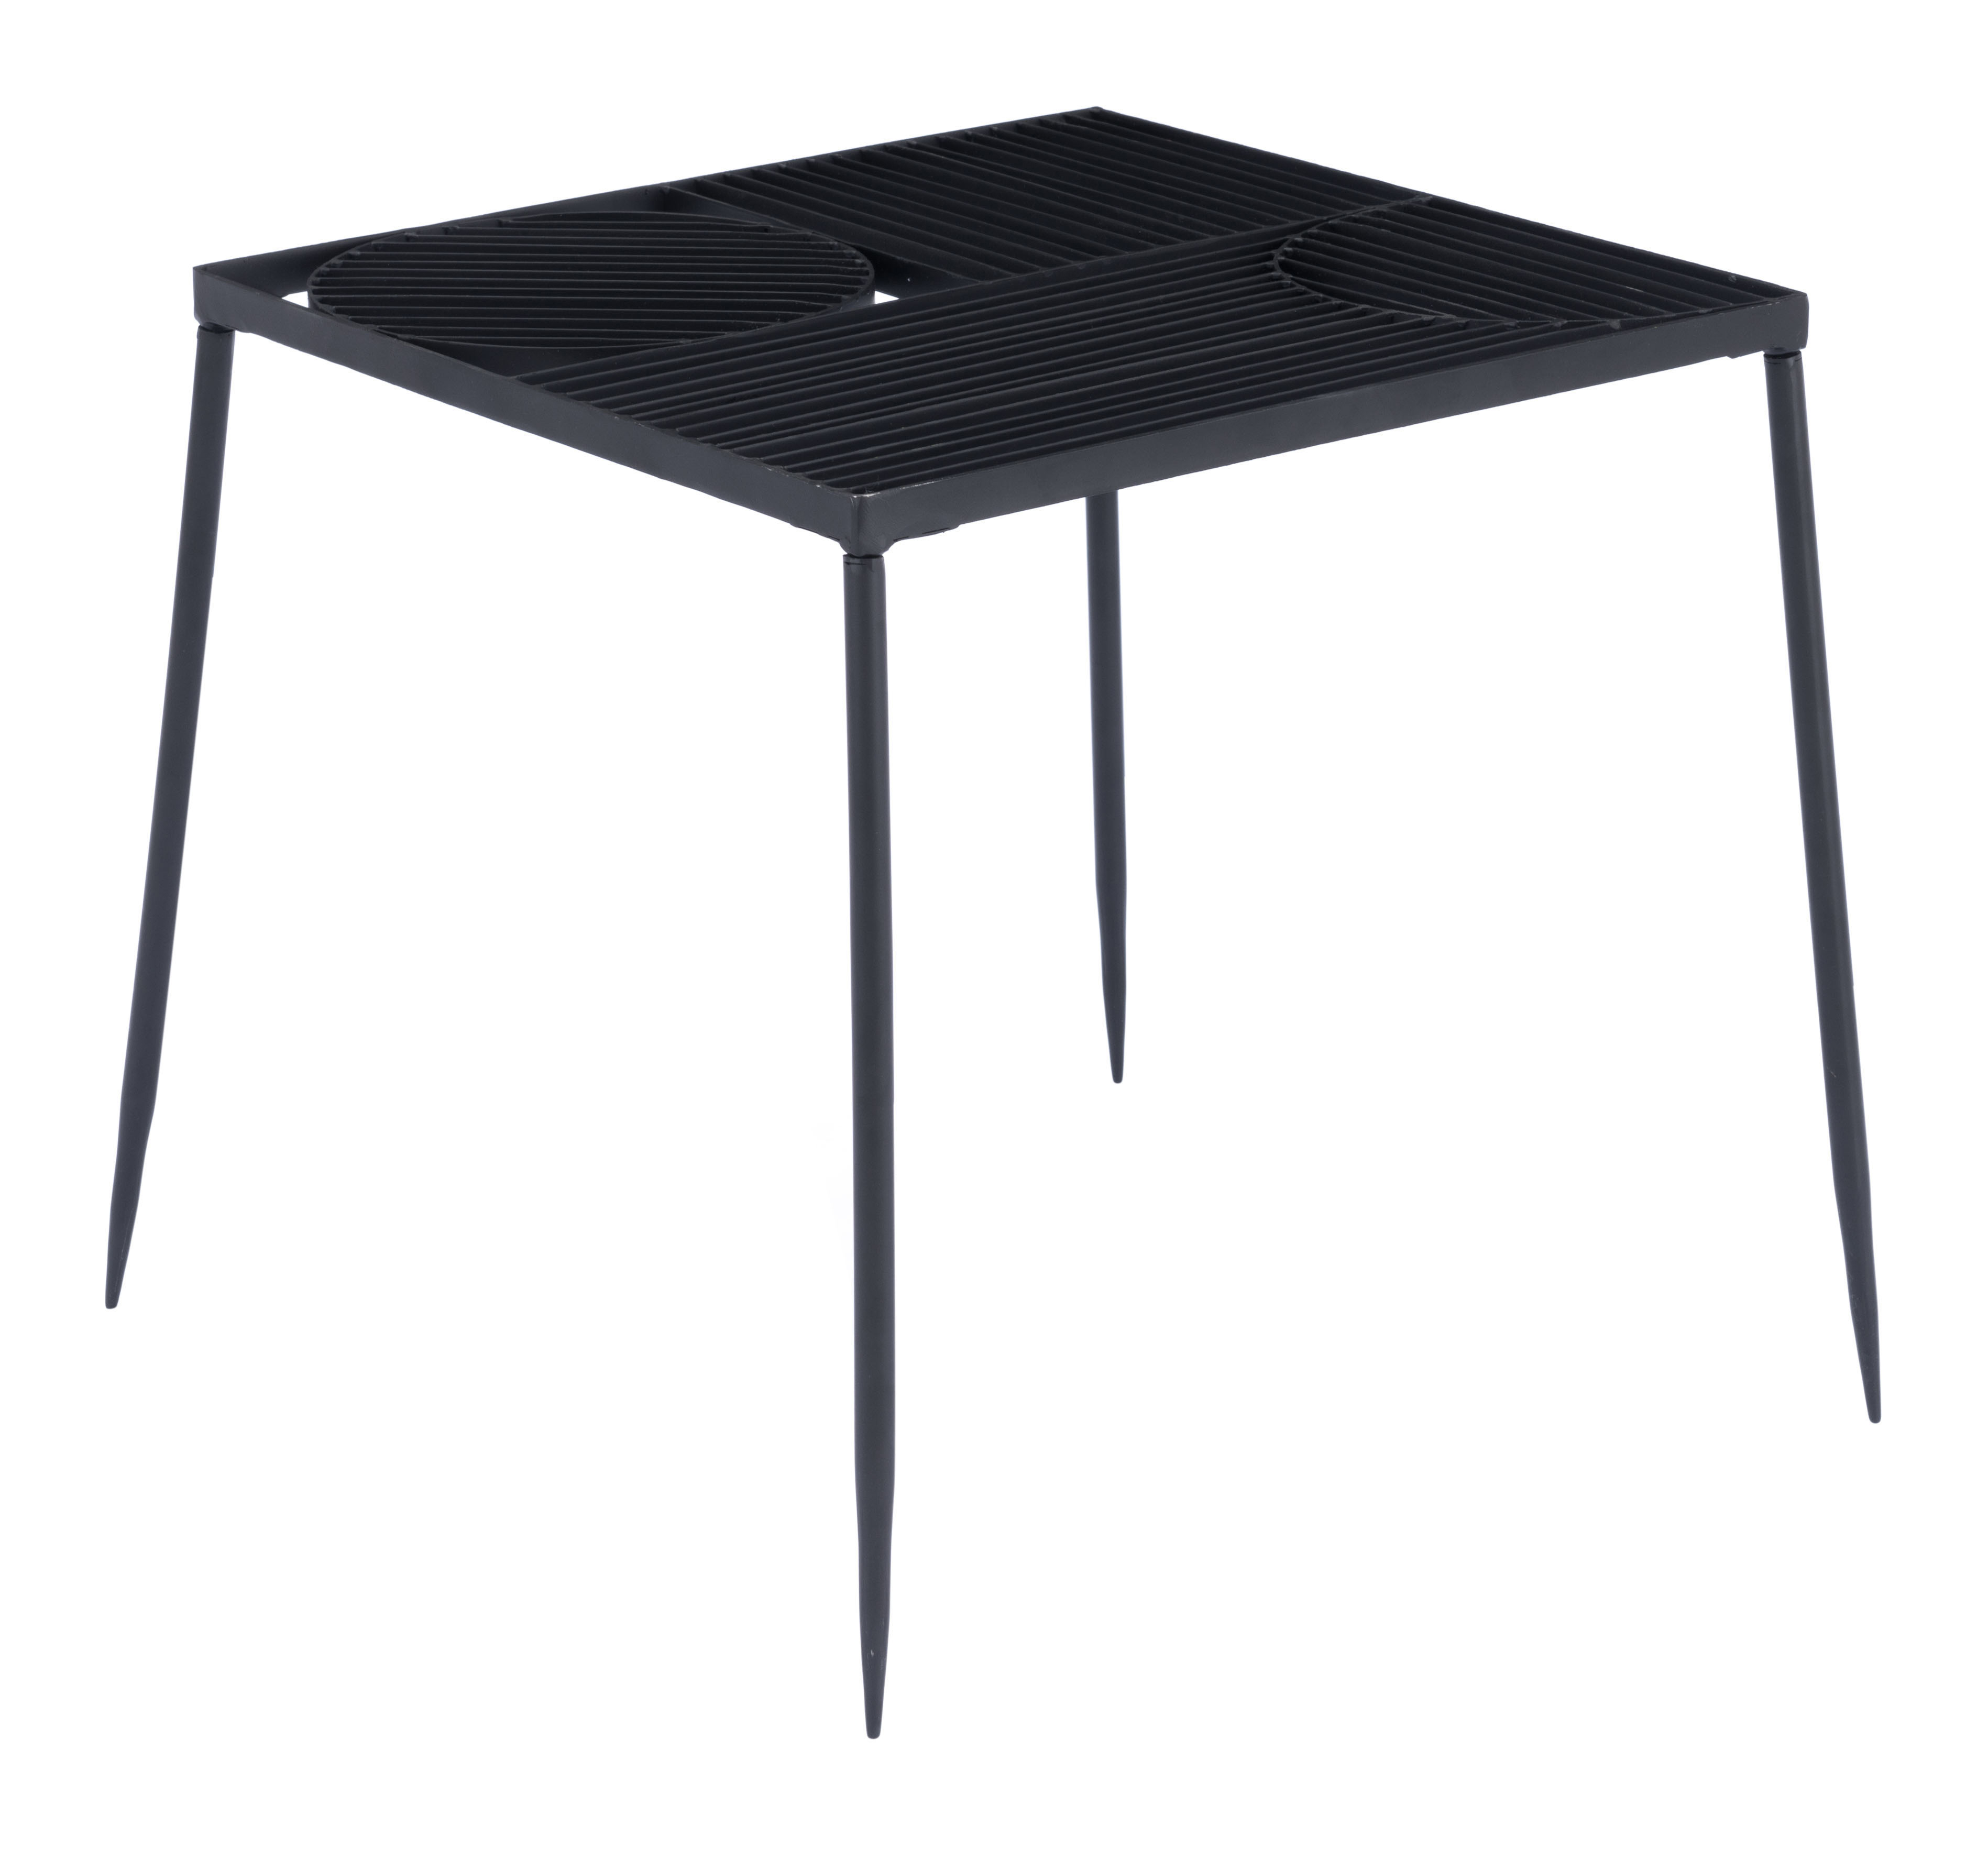 Zuo Modern Arti End Table, Square, Black